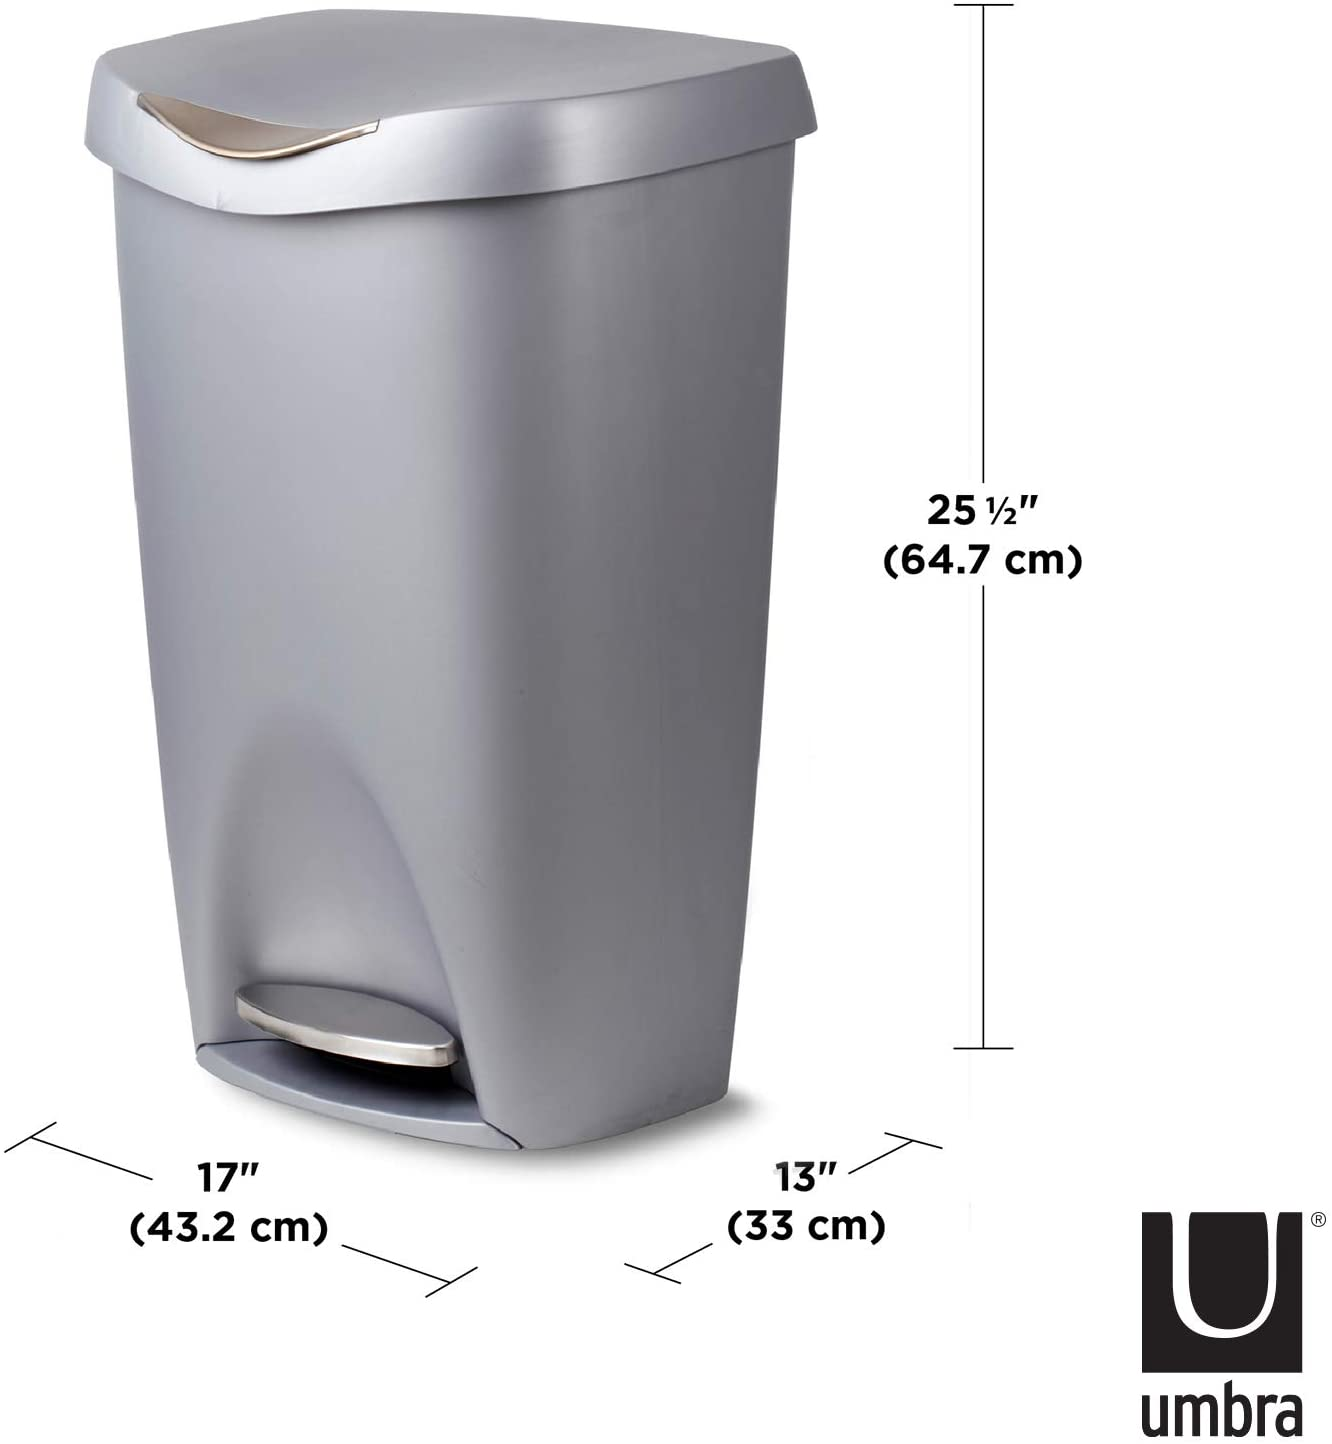 Amazon Com Umbra Brim 13 Gallon Trash Can With Lid Large Kitchen Garbage Can With Stainless Steel Foot Pedal Stylish And Durable Silver Nickel Home Kitchen